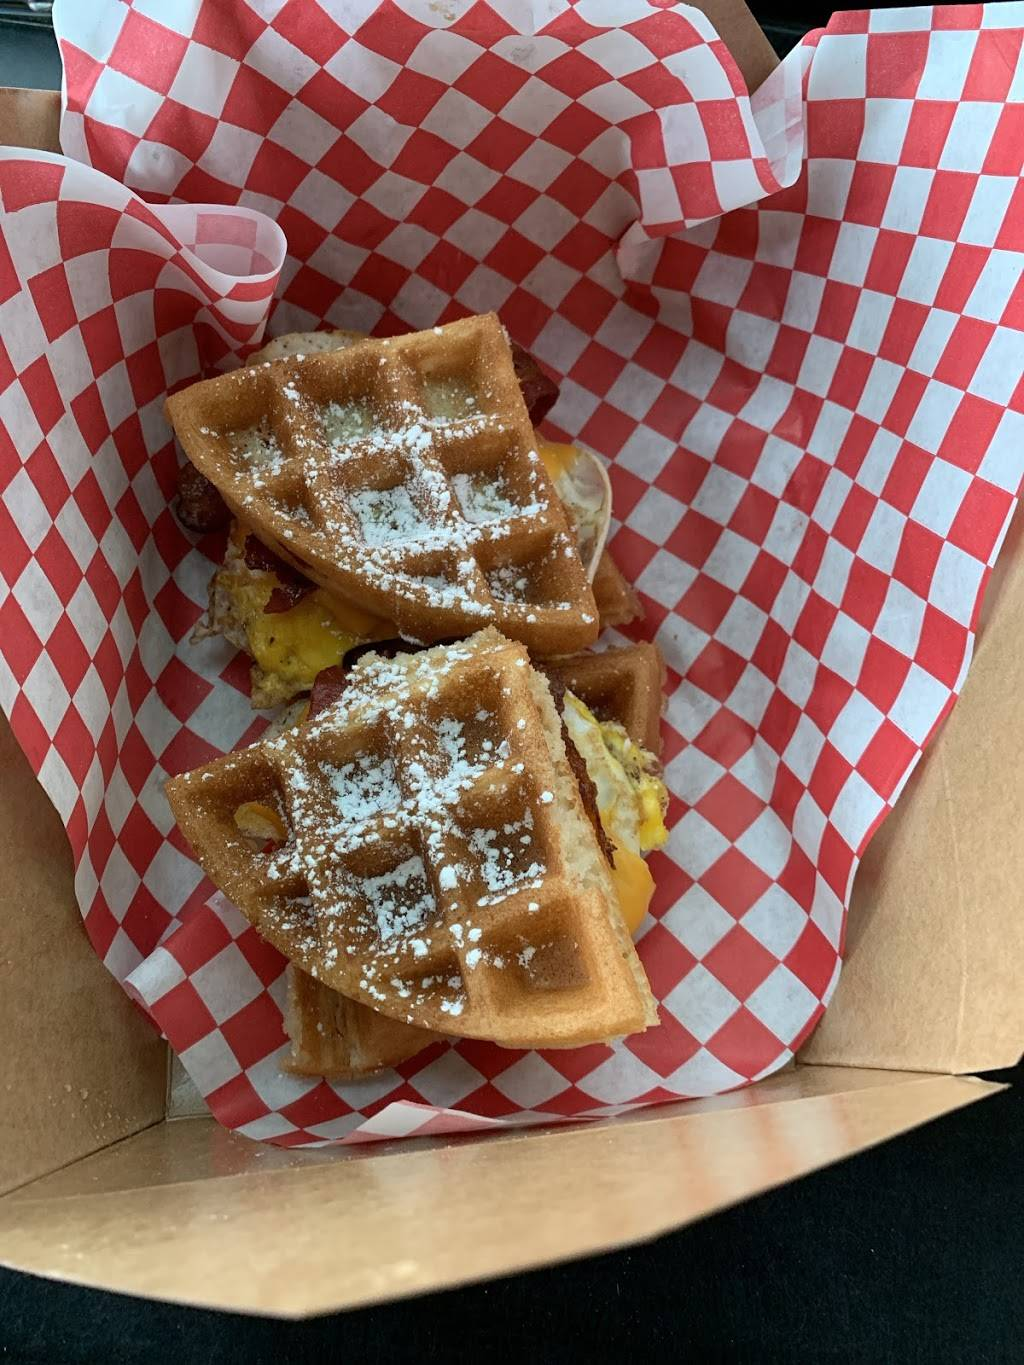 Waffle wagon - restaurant  | Photo 4 of 4 | Address: 4 Mt Vernon St, Ridgefield Park, NJ 07660, USA | Phone: (551) 259-4040